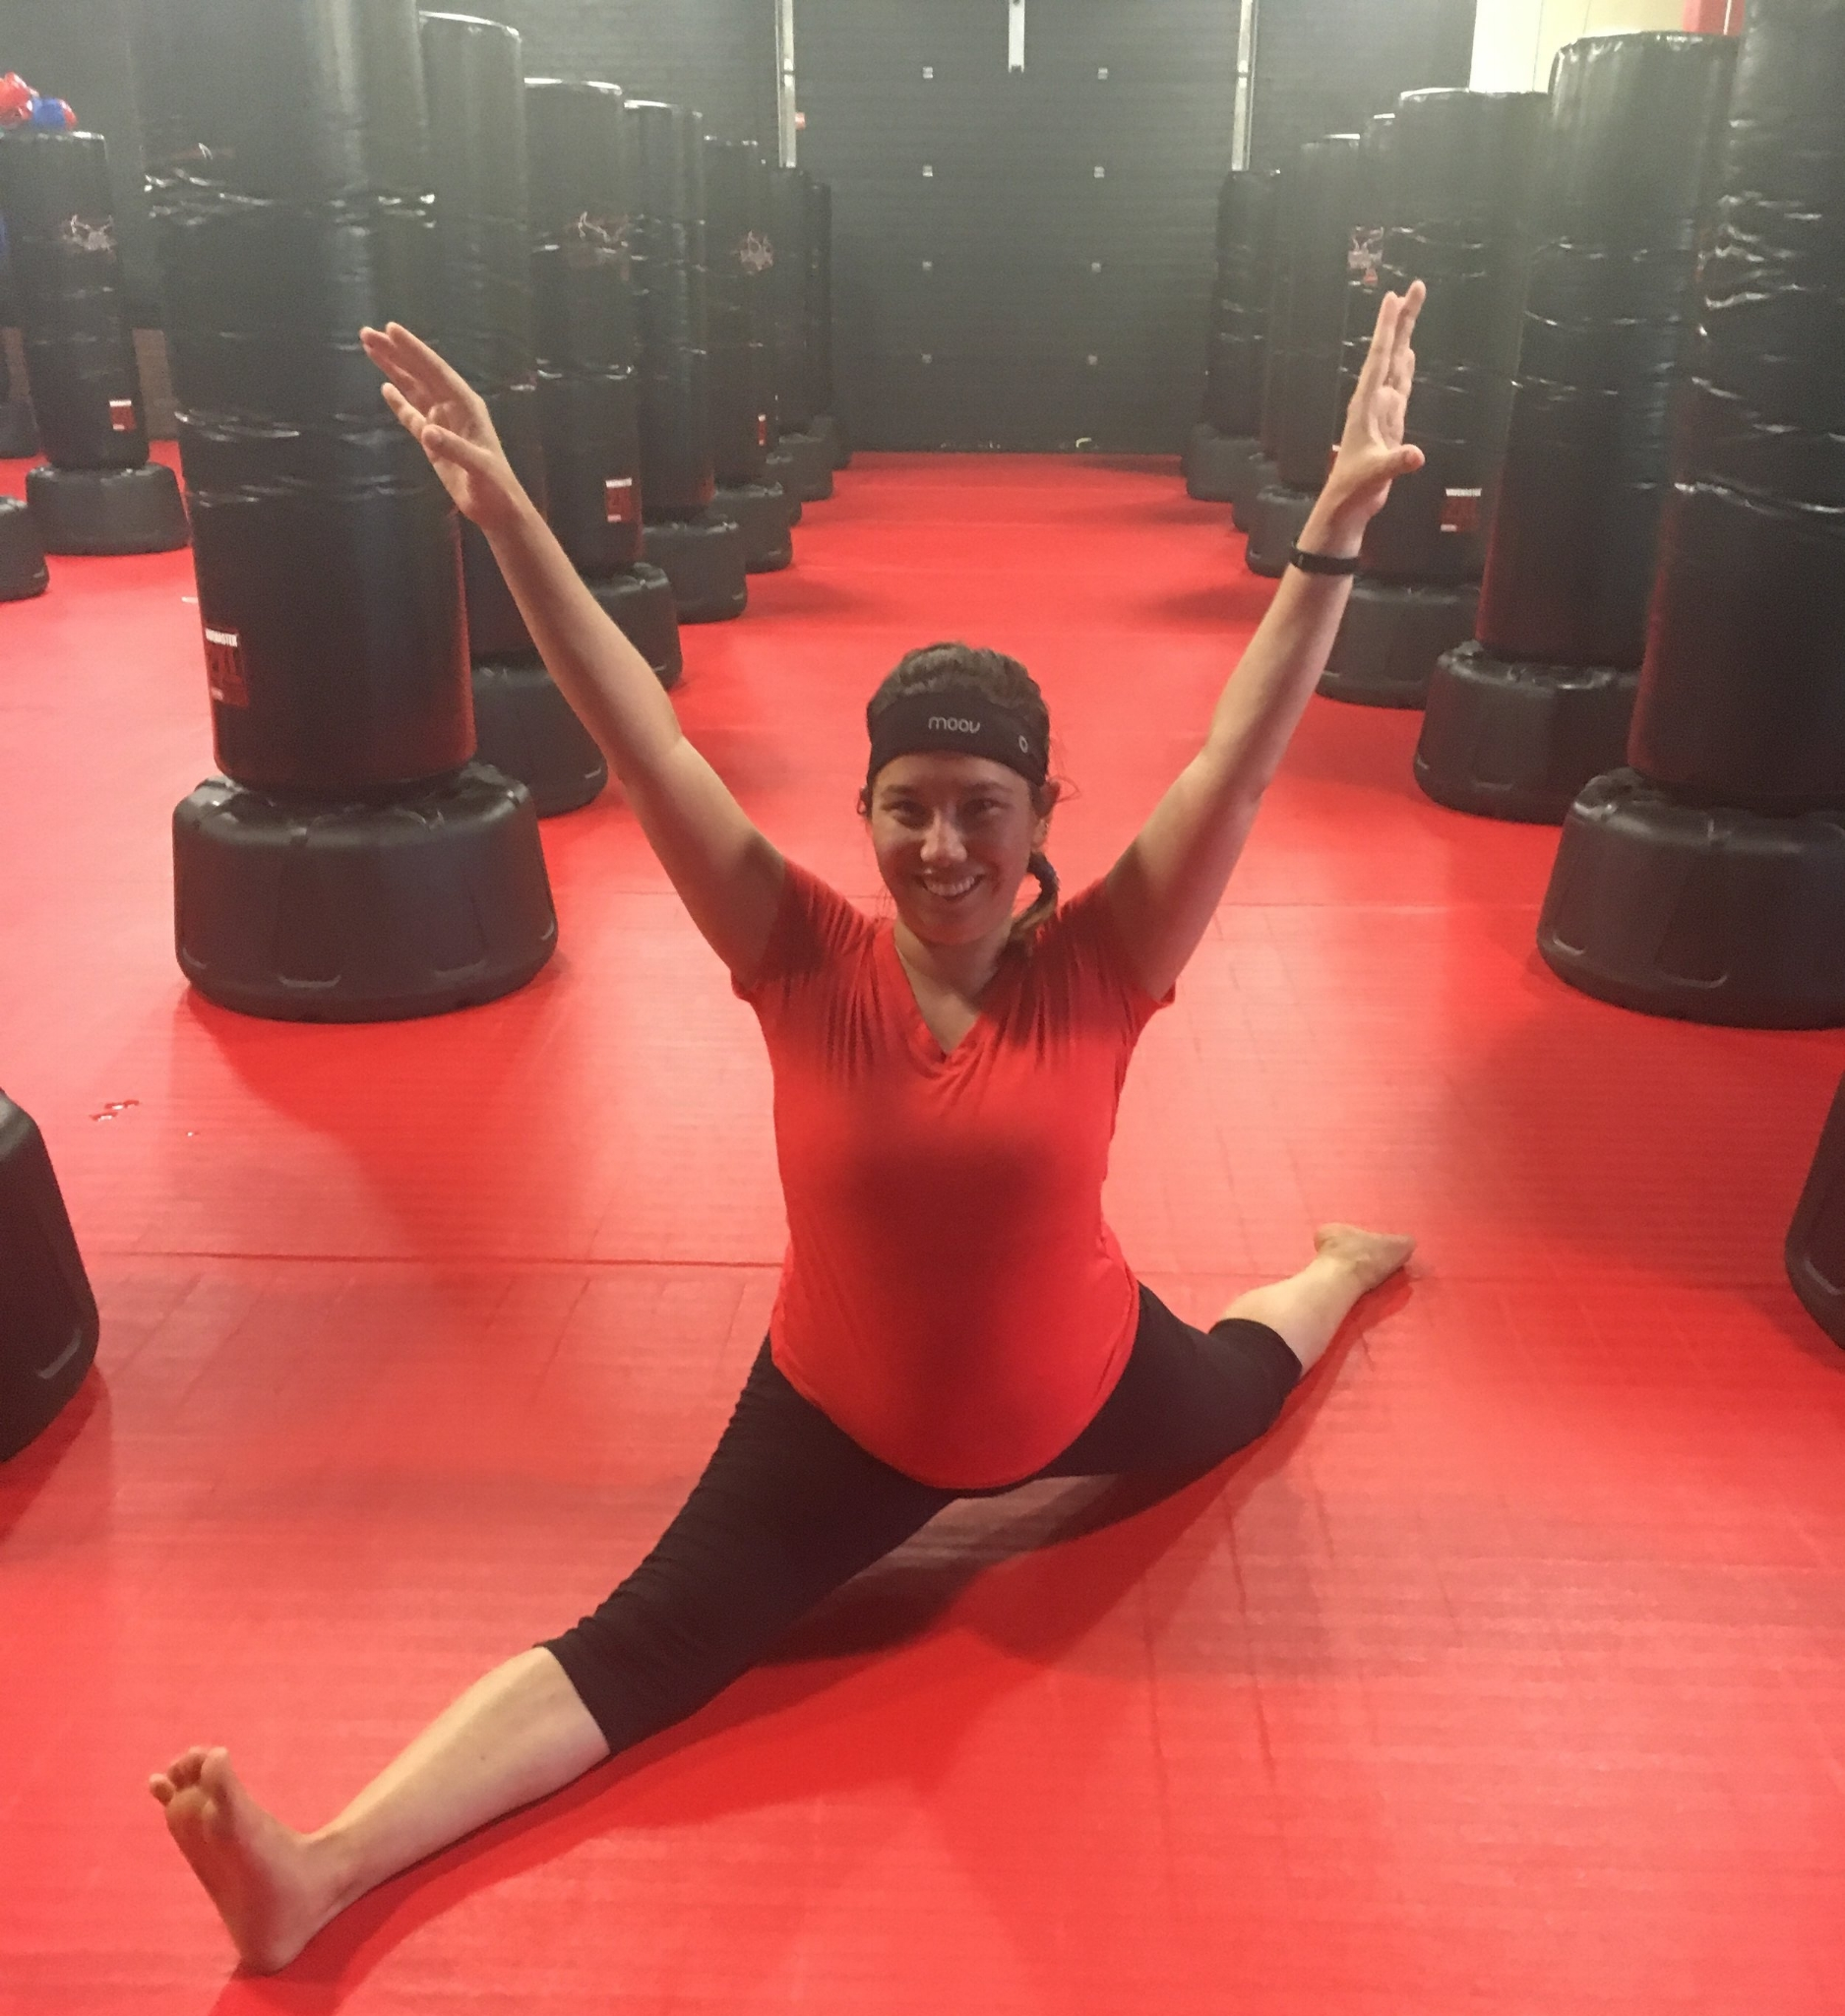 July 12, 2018 - VICTORY FRONT SPLIT  Couldn't do these during my 13 years of dance training, but something's starting to click. I'm getting stronger, more flexible.My body is working like a body, and I'm not stopping now.